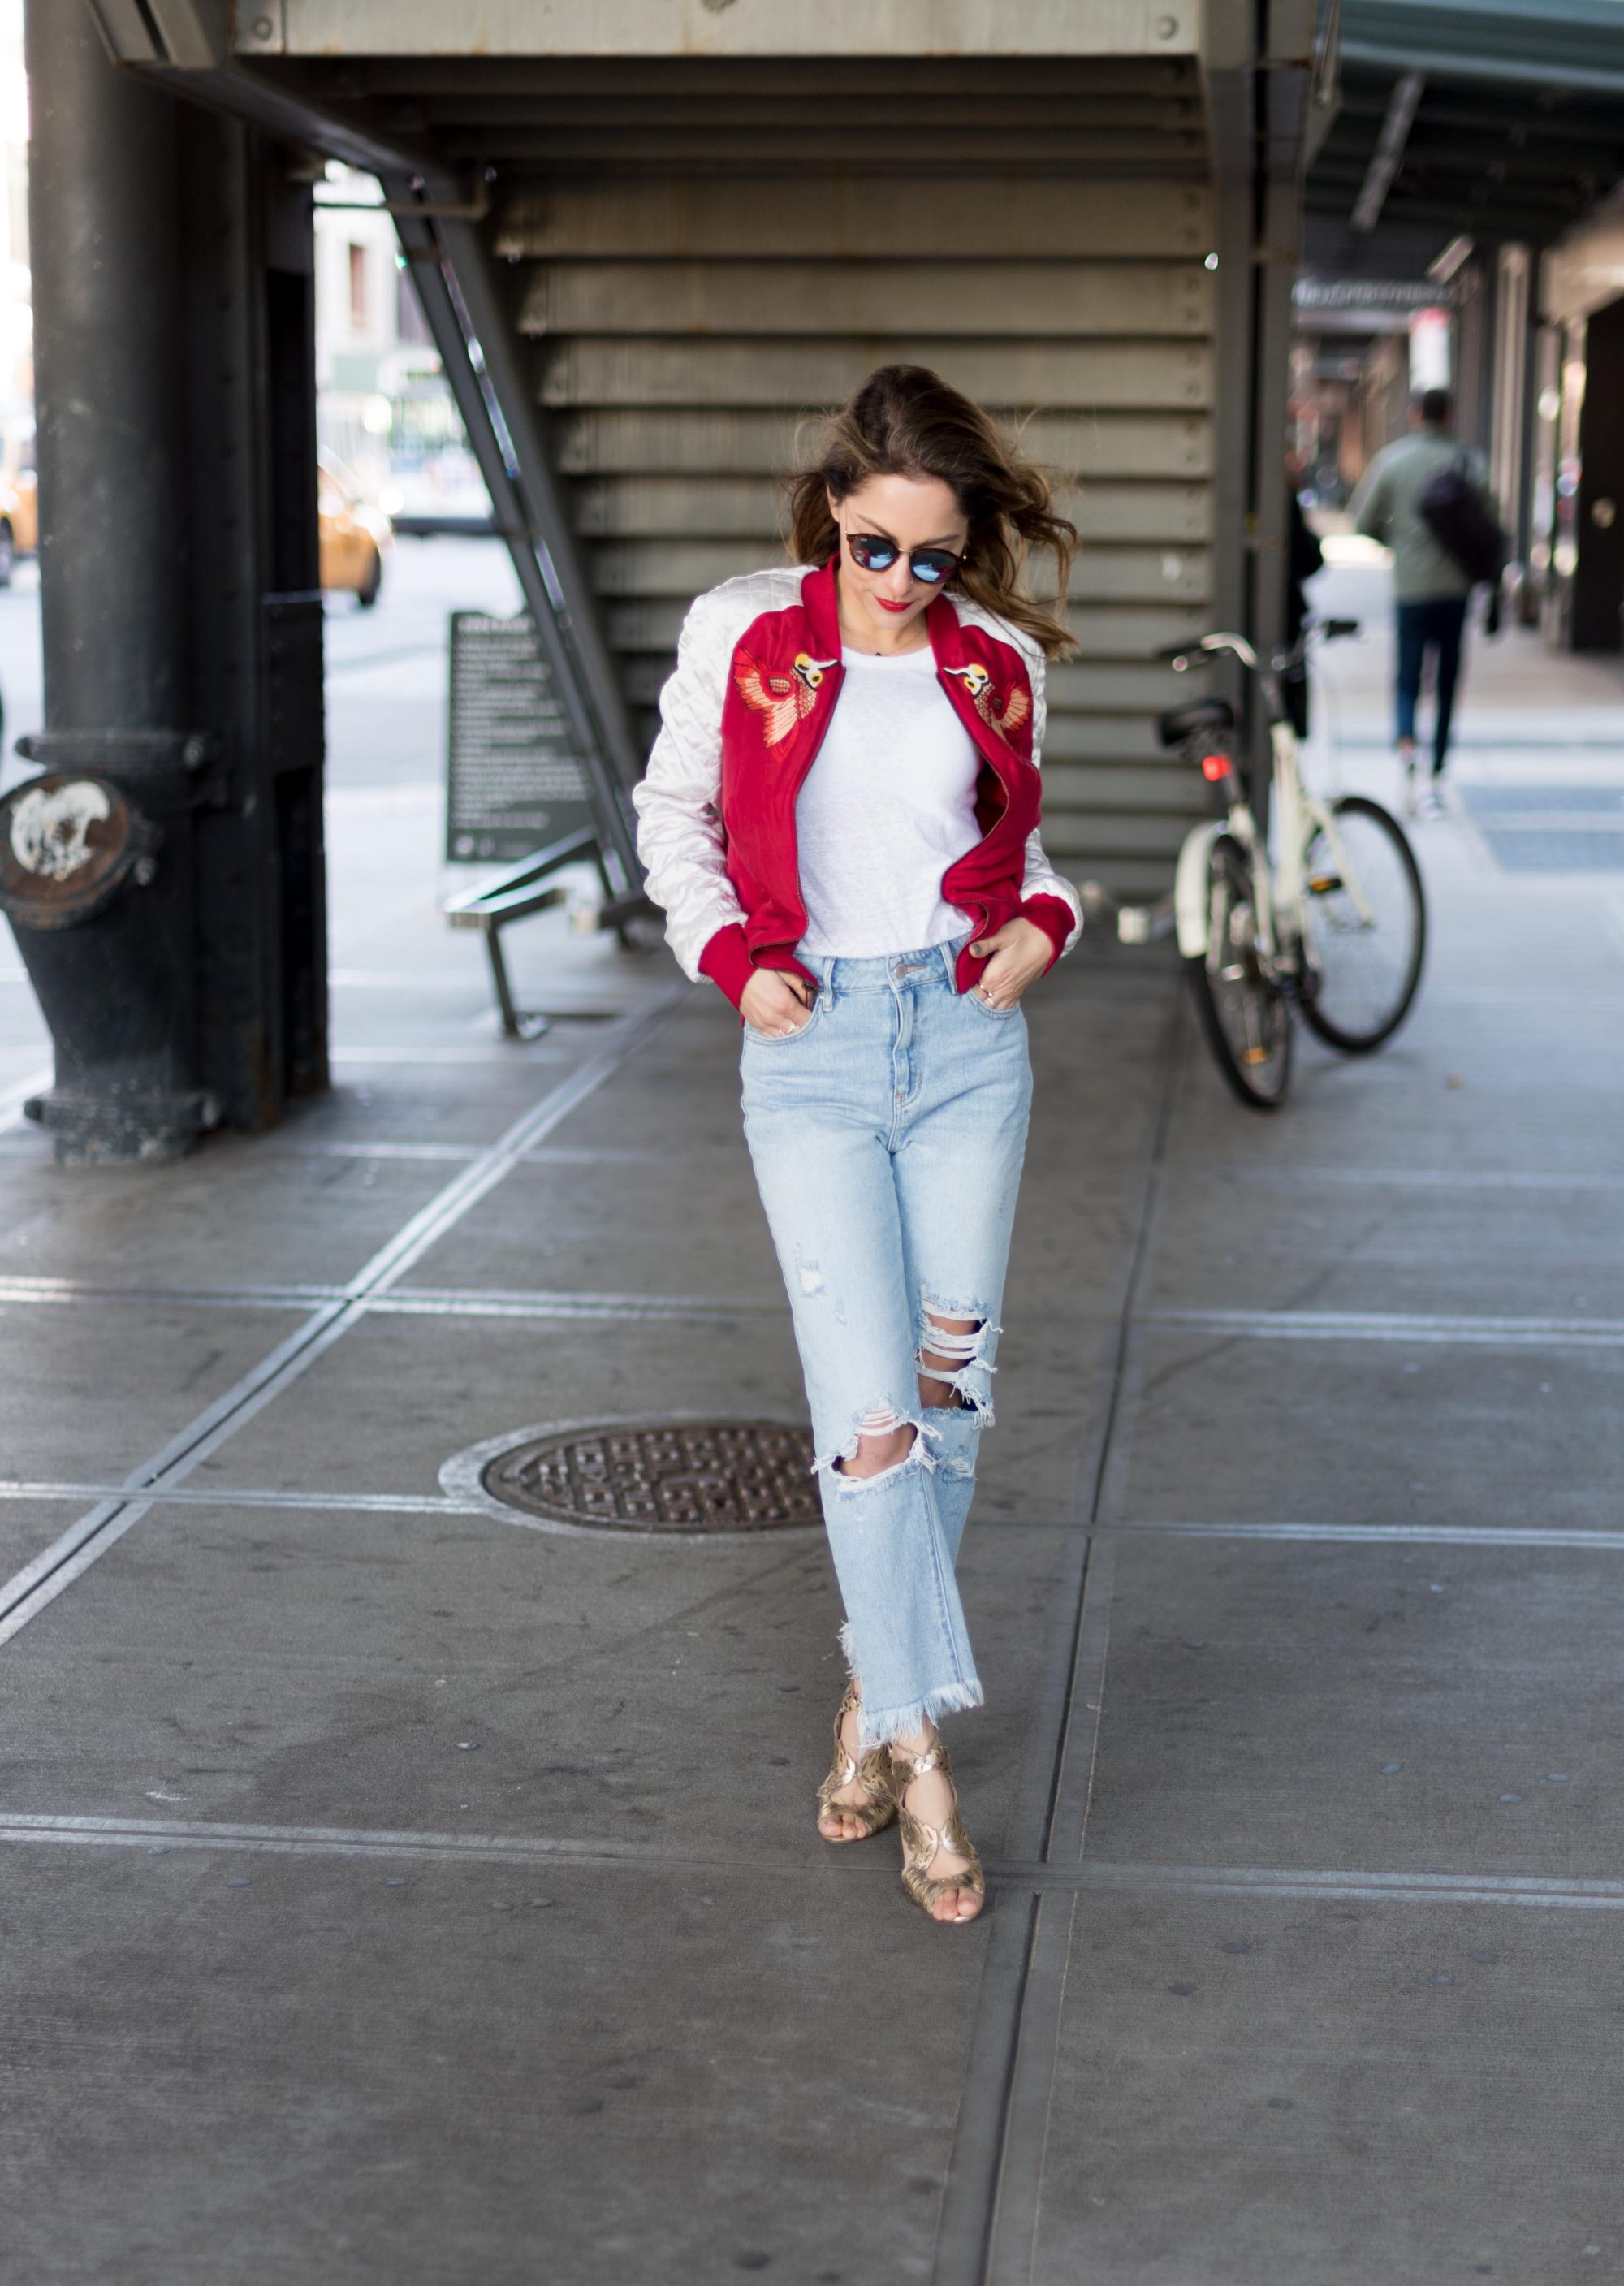 Whitney's Wonderland Top NYC Fashion Blogger Kendall & Kylie ripped high waist jeans